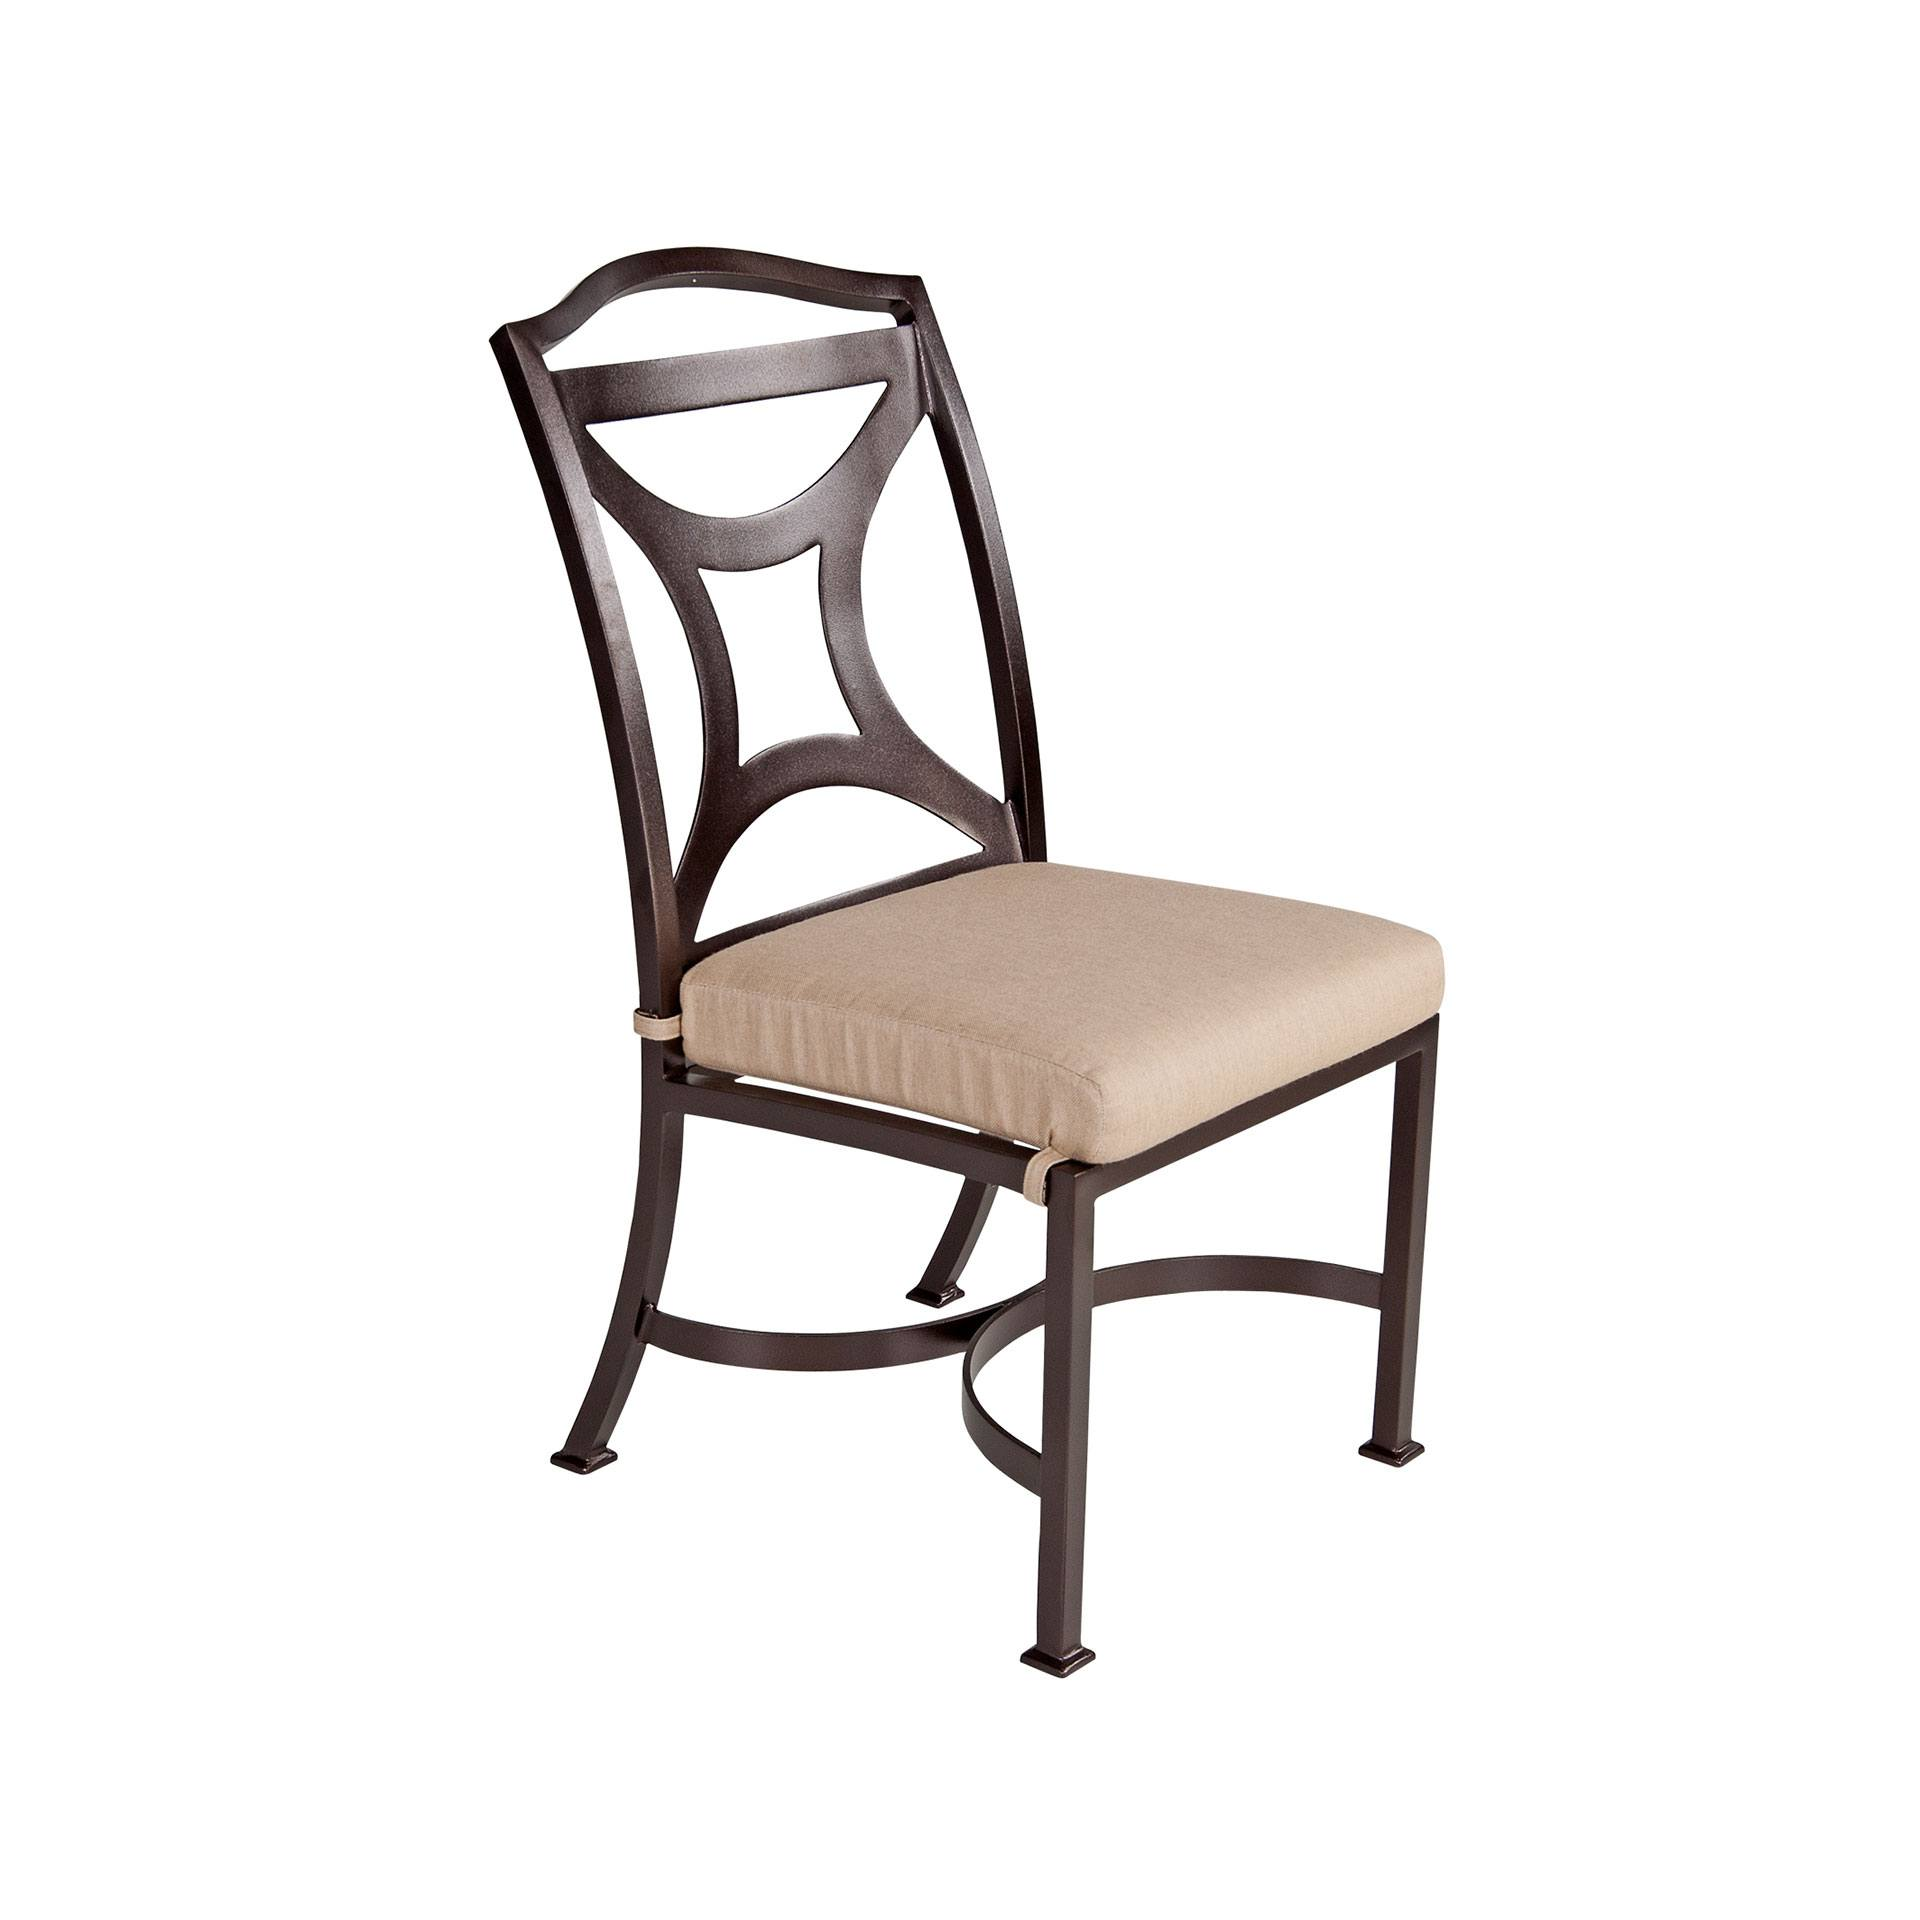 Ow Lee Madison Dining Side Chair Leisure Living